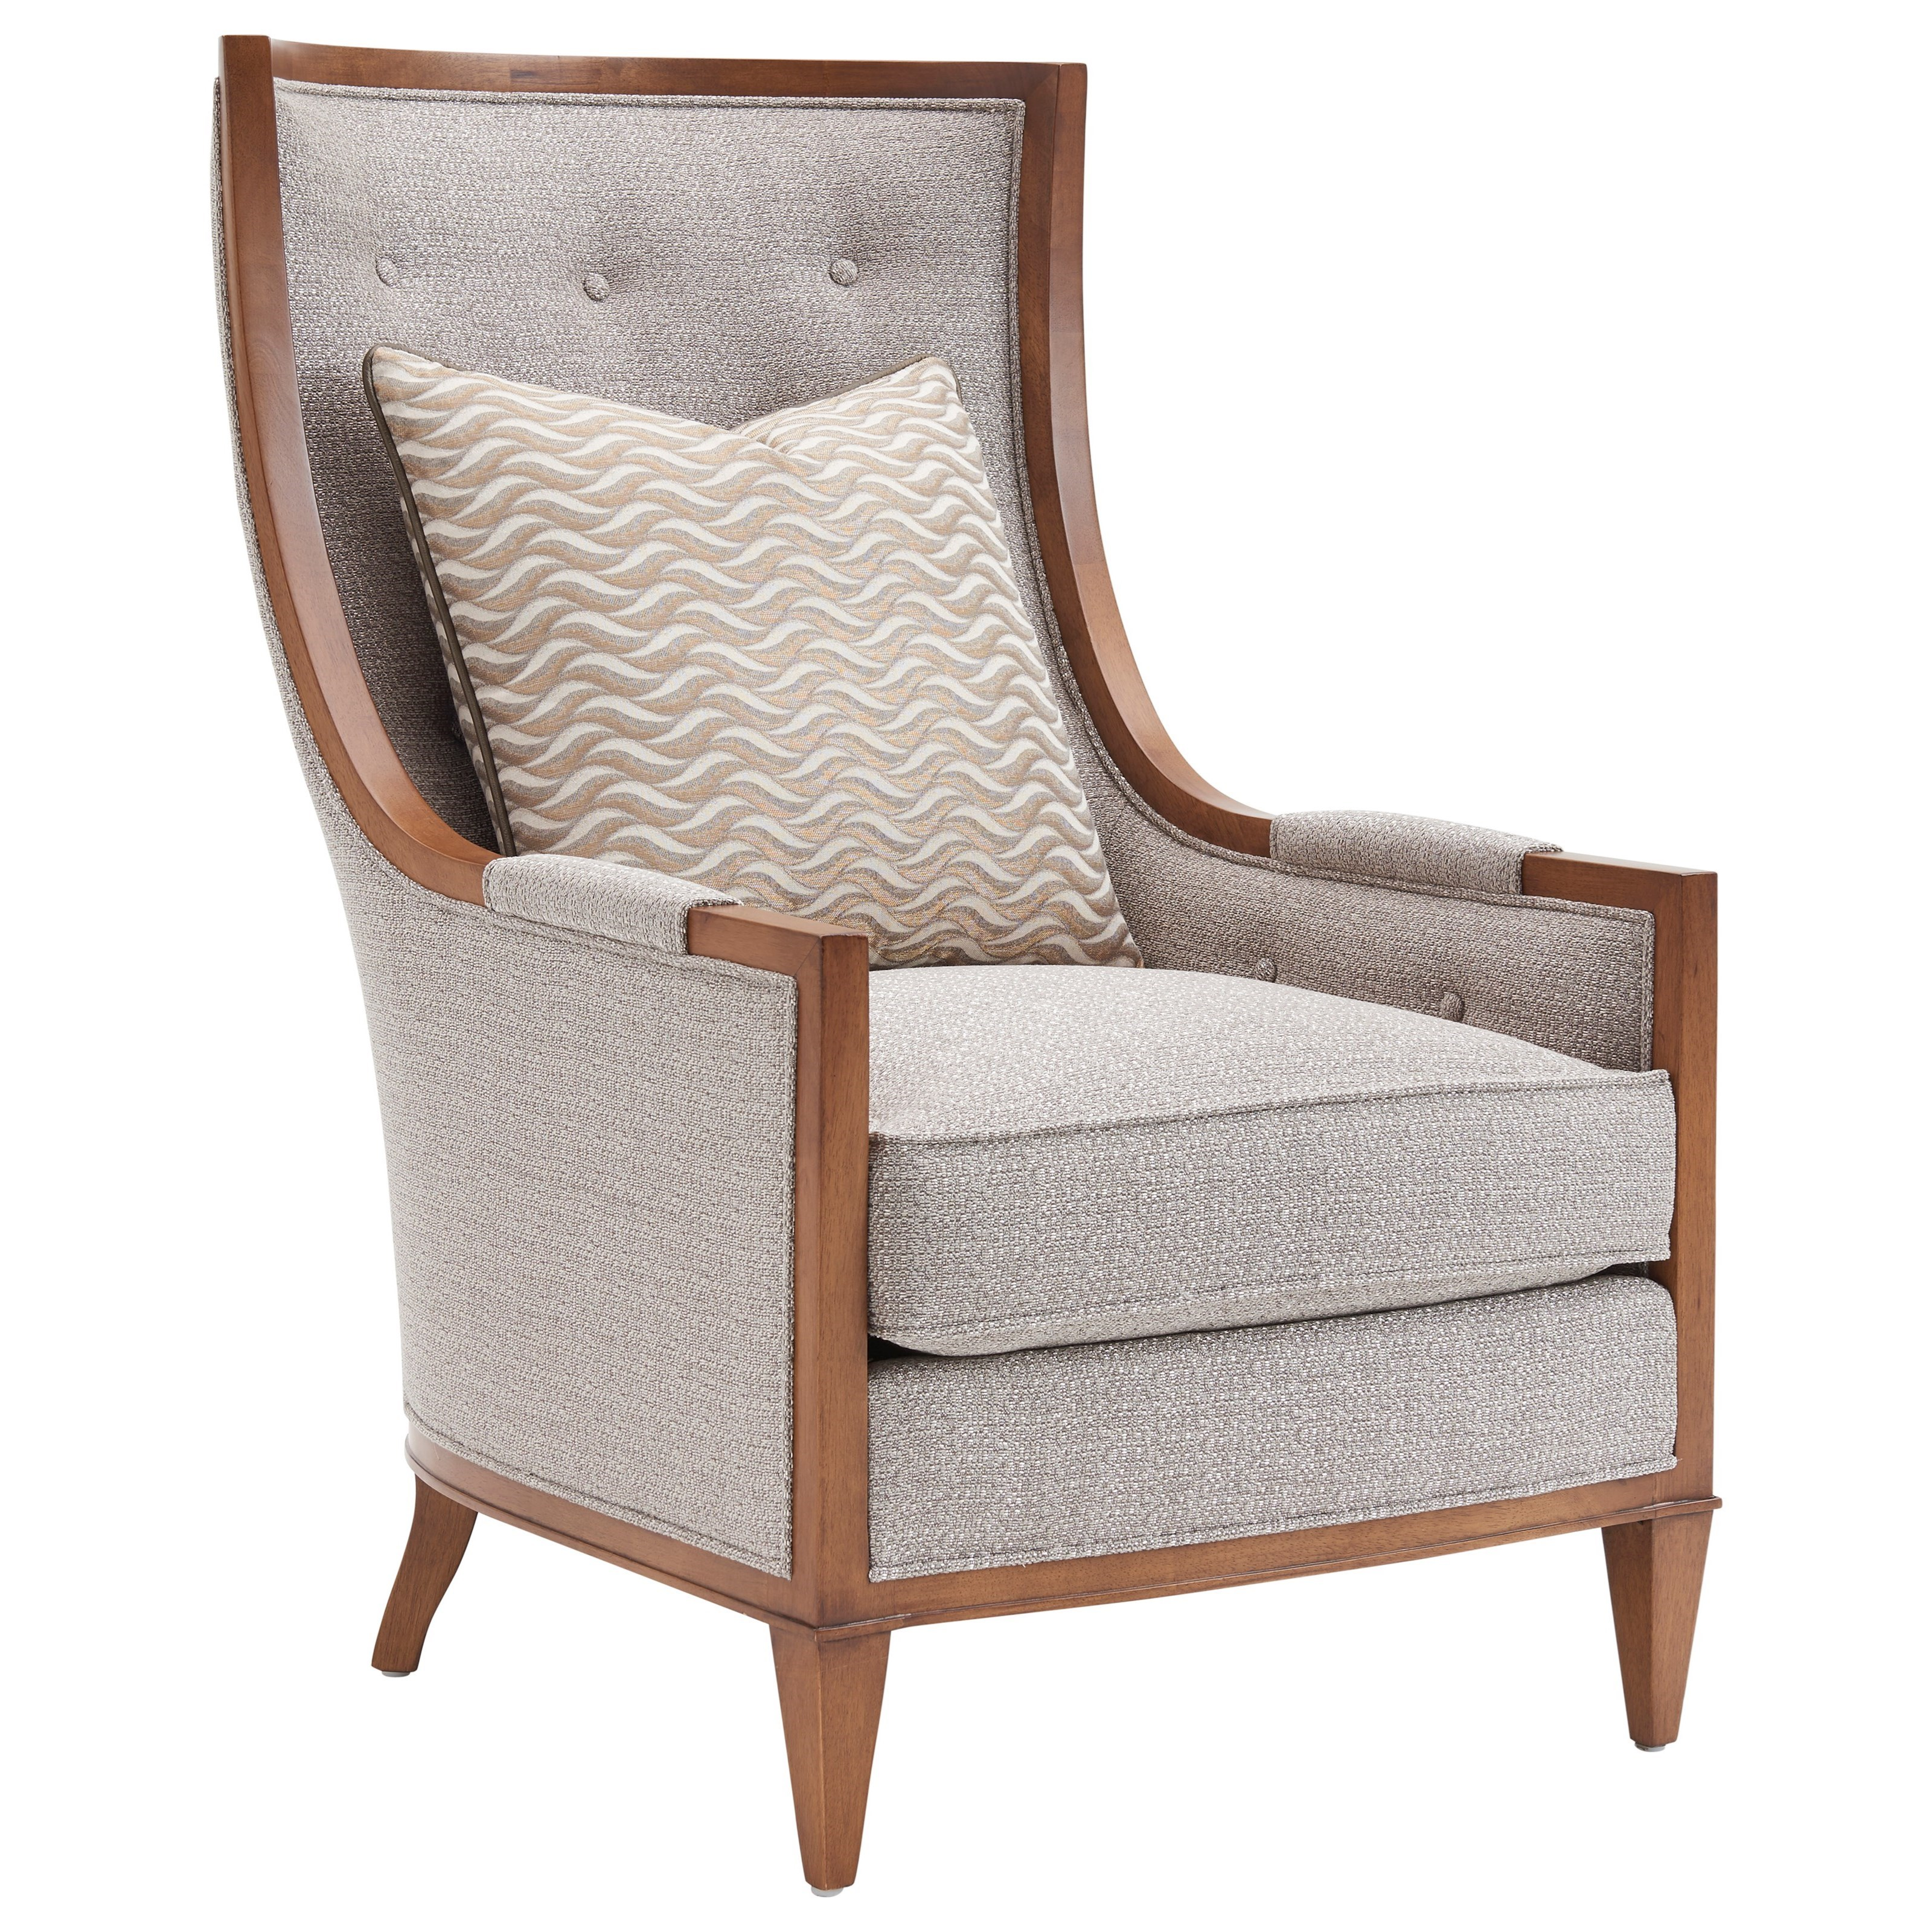 Tower Place Greenwood Chair by Lexington at Johnny Janosik